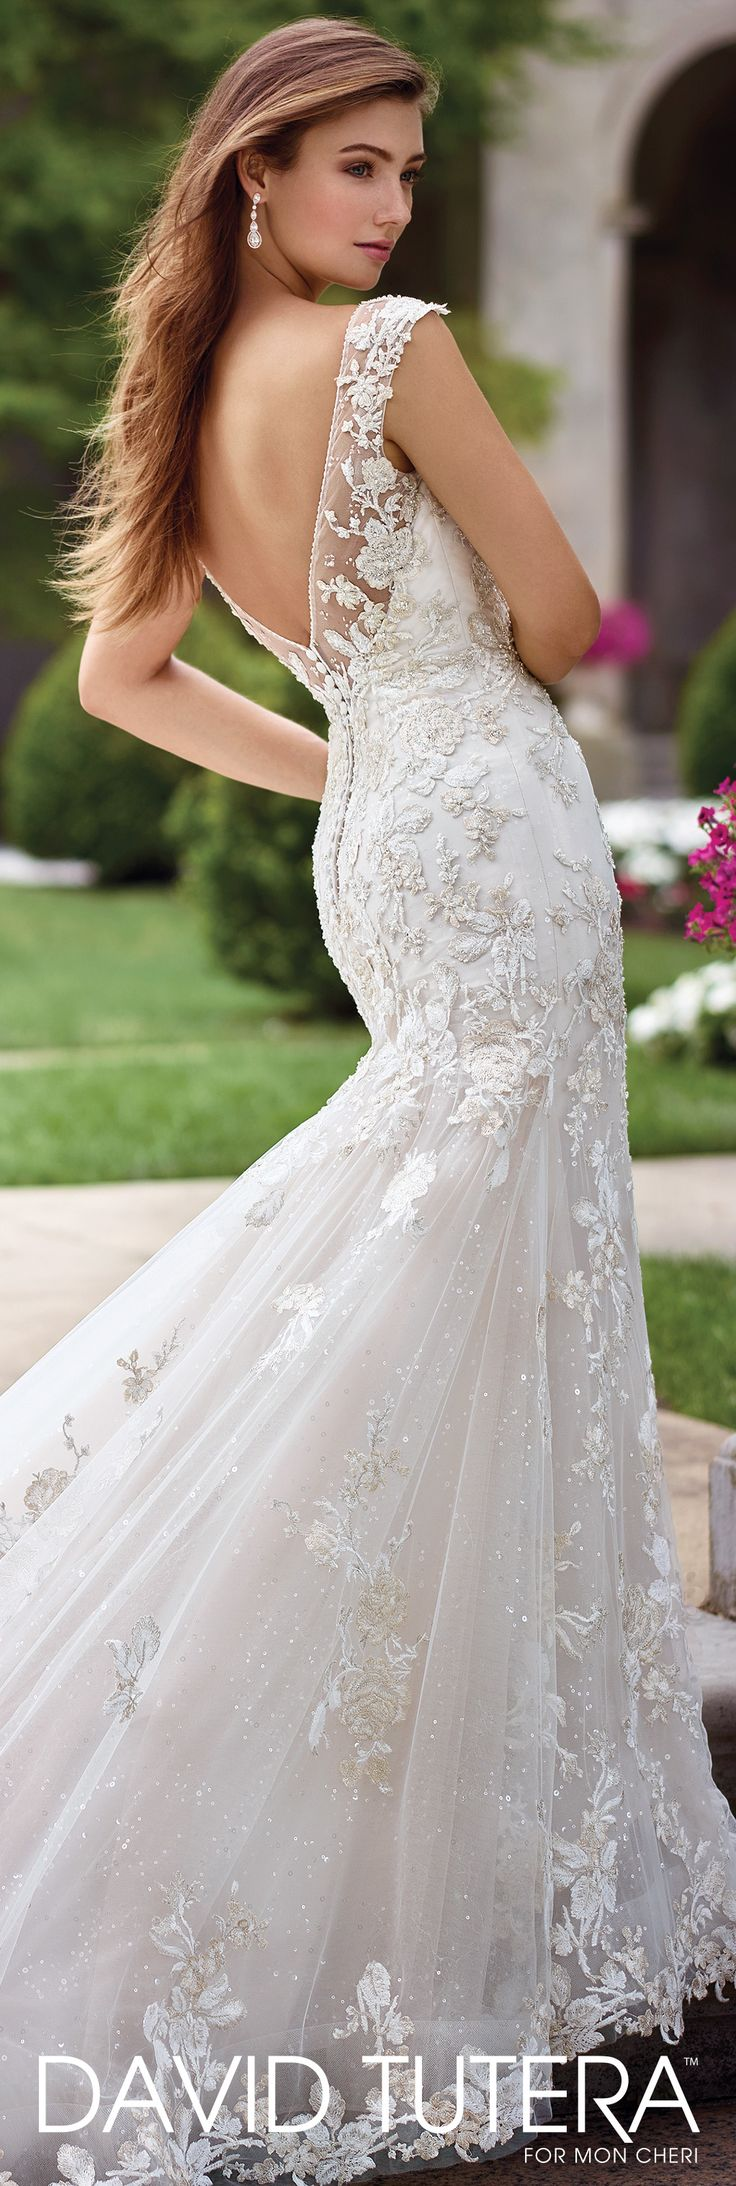 David Tutera for Mon Cheri Spring 2017 Collection - Style No. 117286 Citrine - lace and sequin tulle cap sleeve wedding dress with low V-back